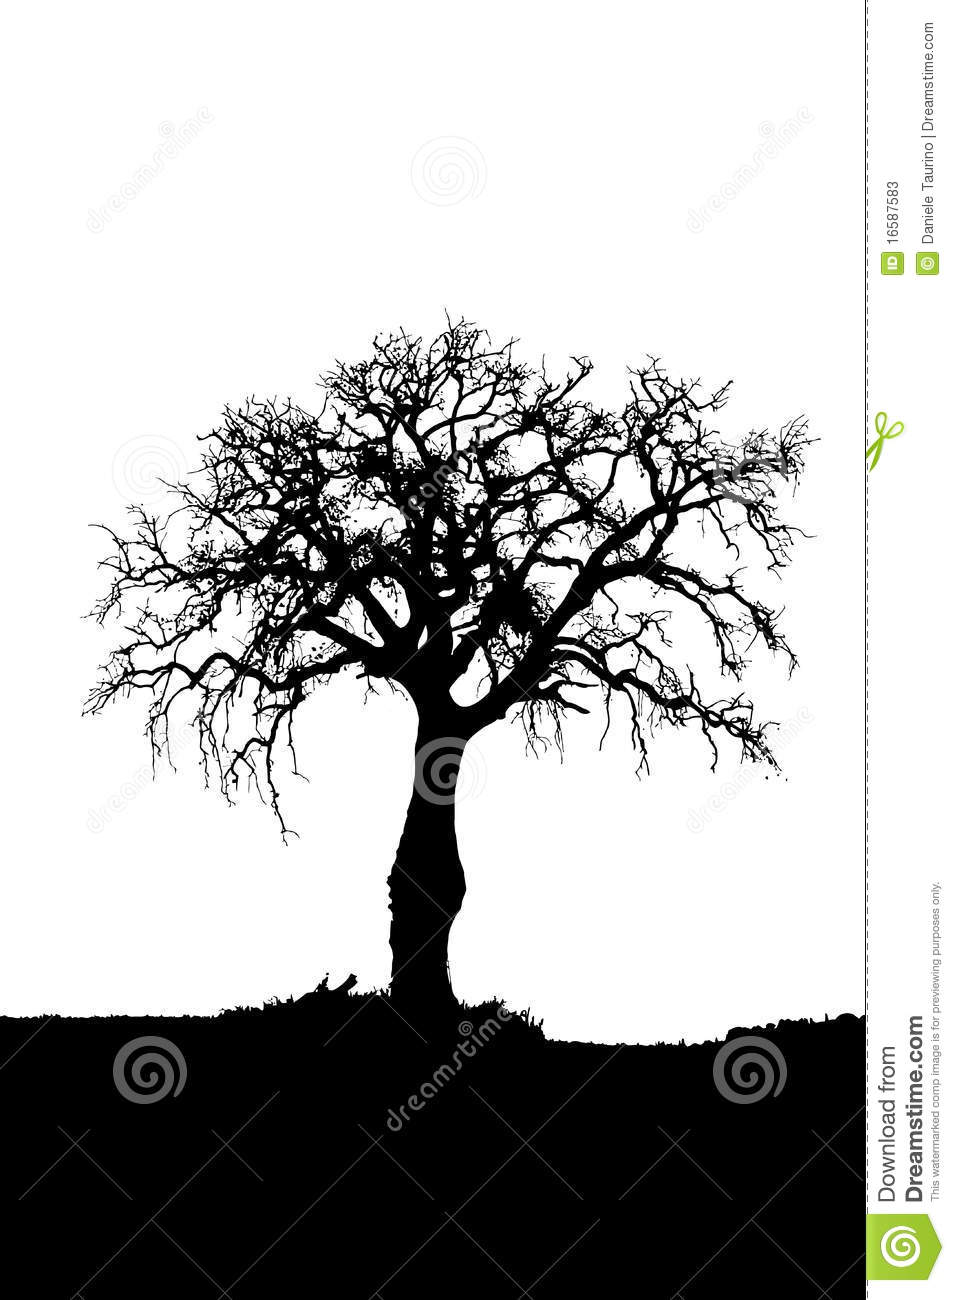 Nature Images 2mb: Dead Tree Silhouette Stock Vector. Image Of Nature, Bald